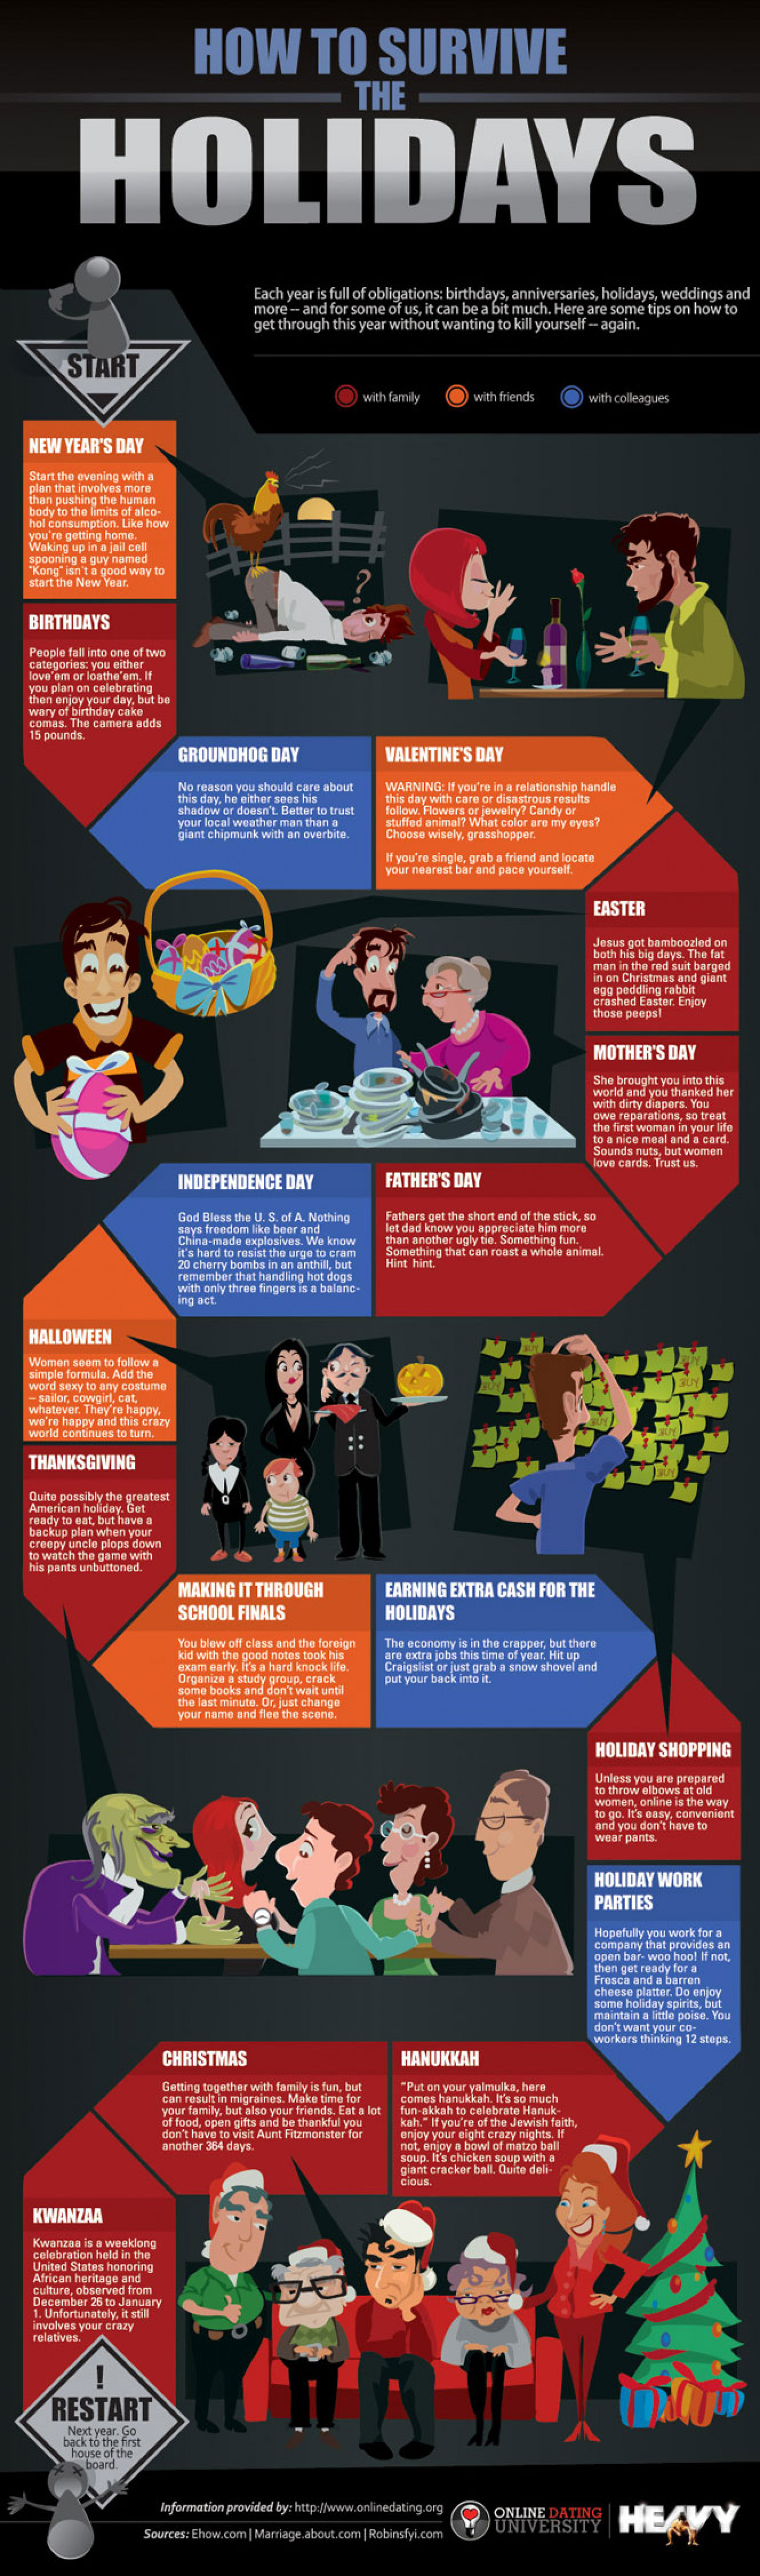 How To Survive The Holidays Infographic